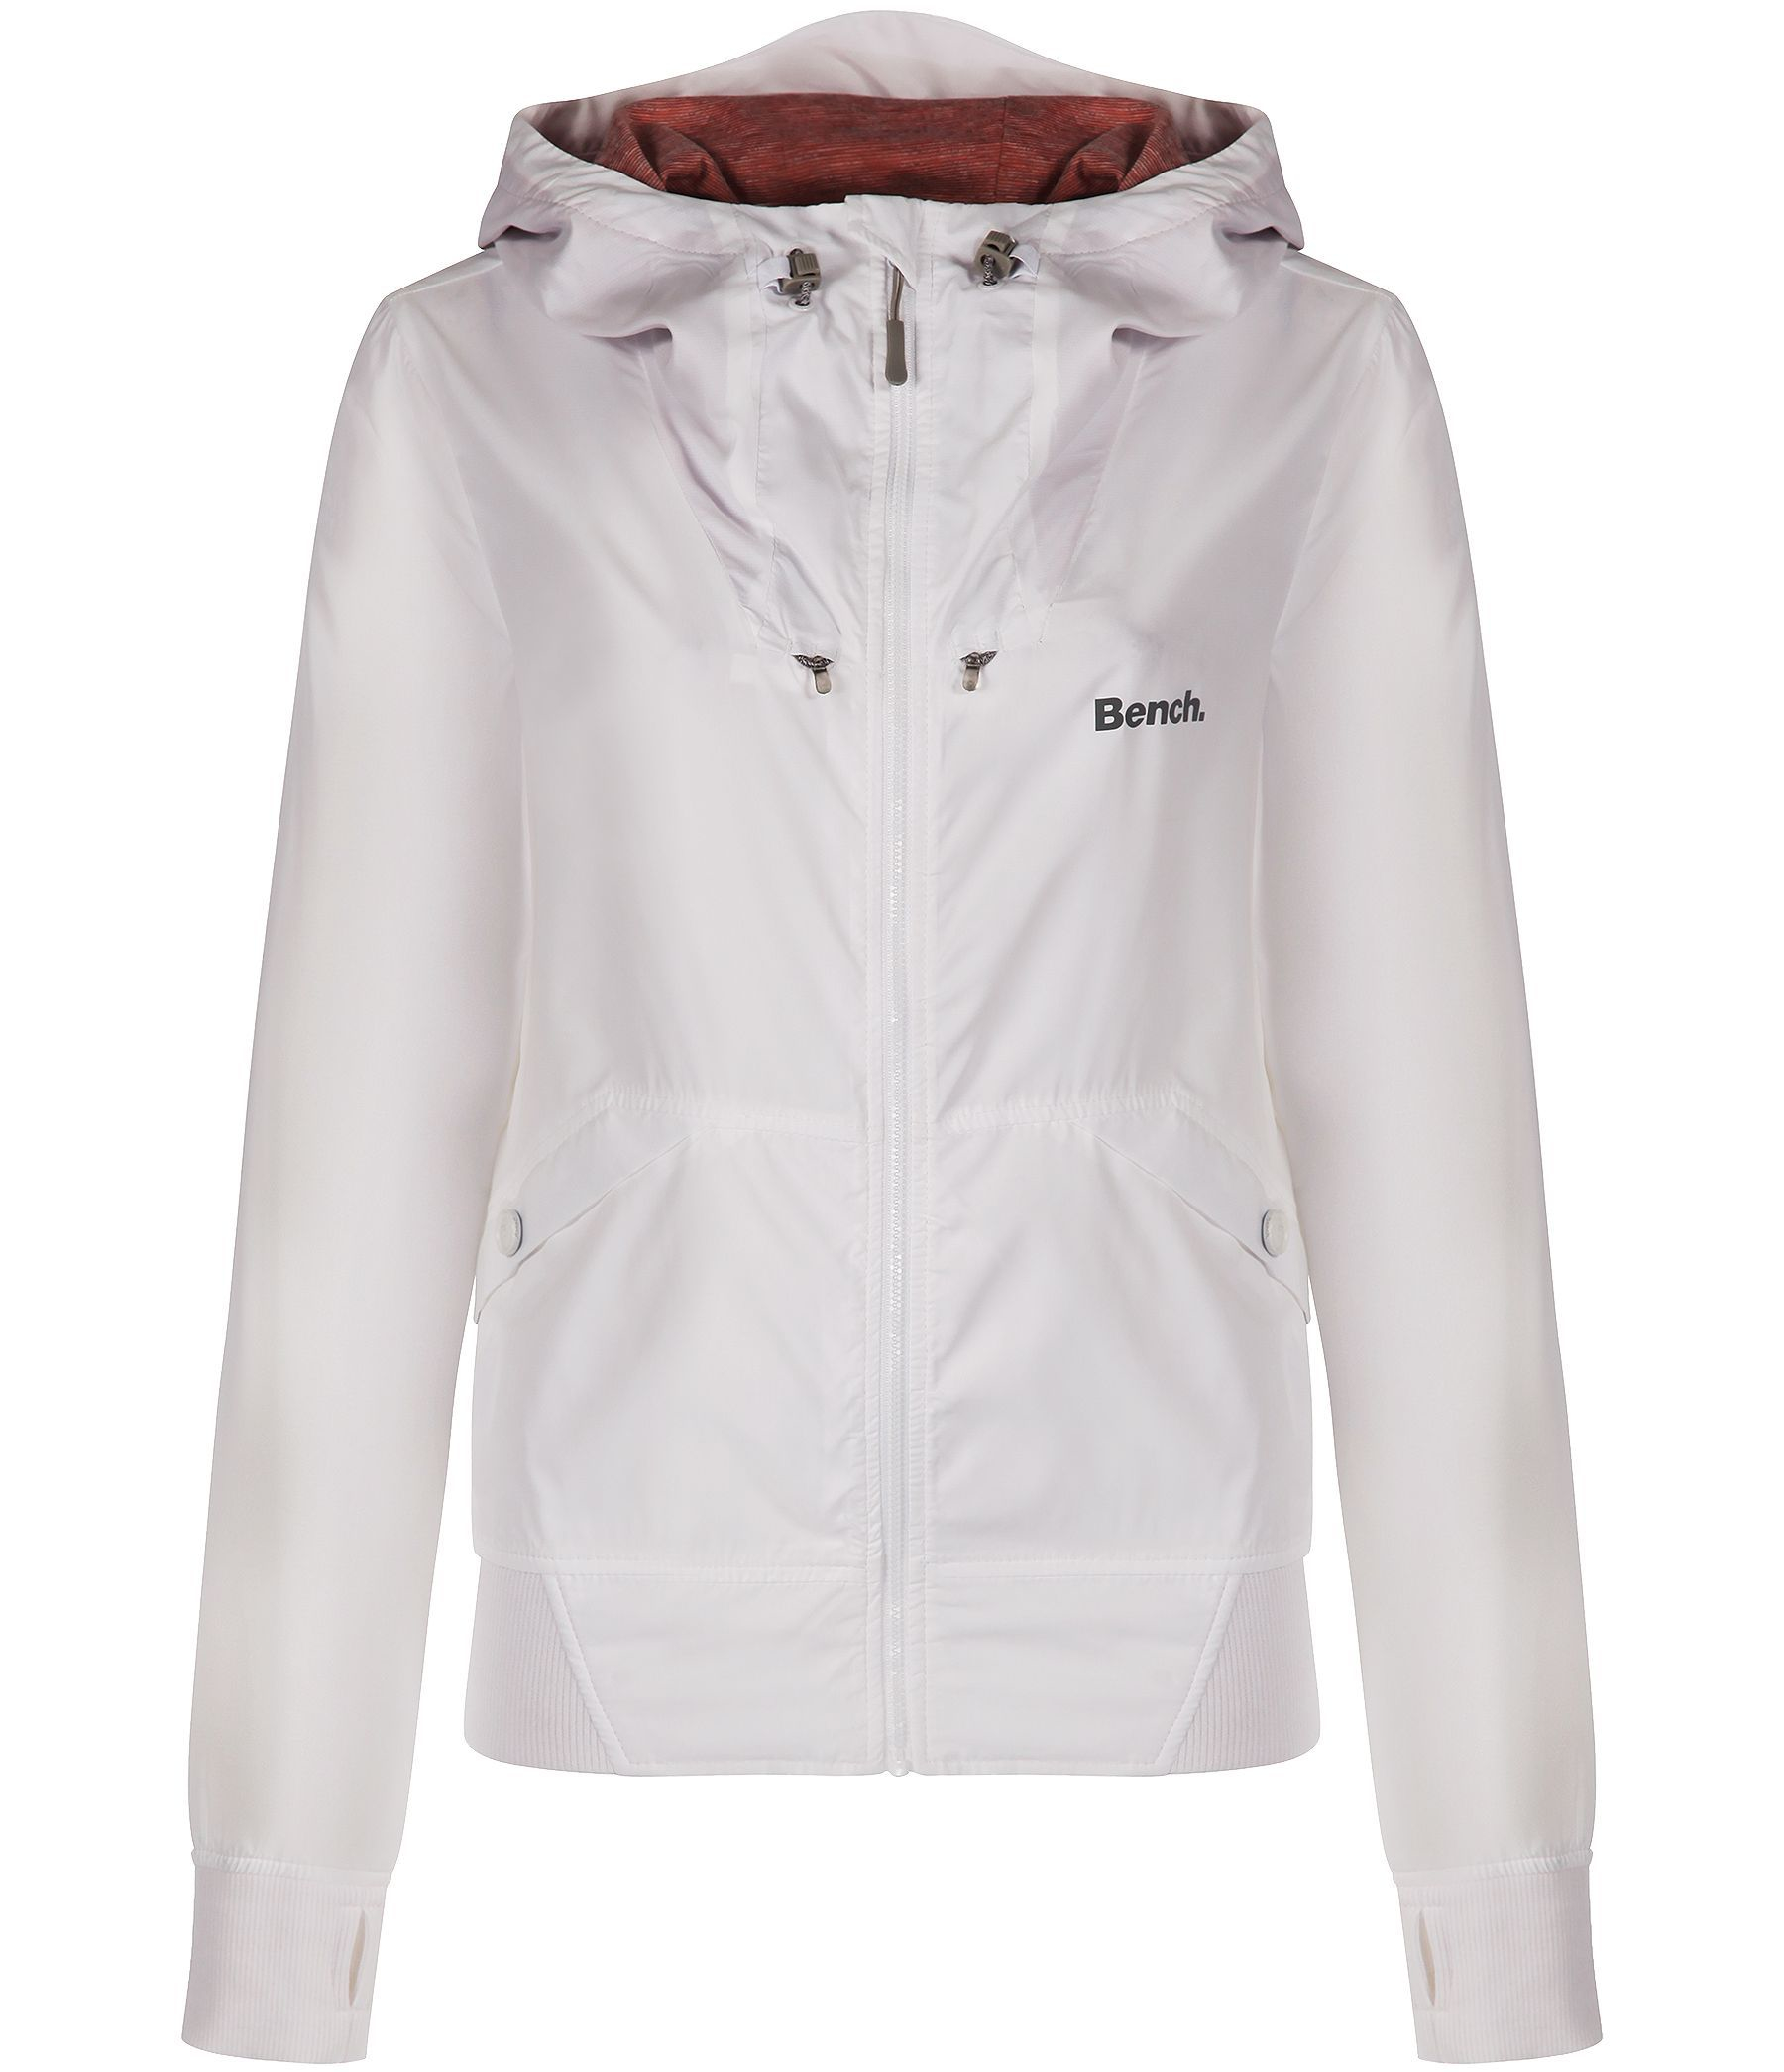 Bench onetimer ii b lightweight shell jacket in white lyst Bench jacket